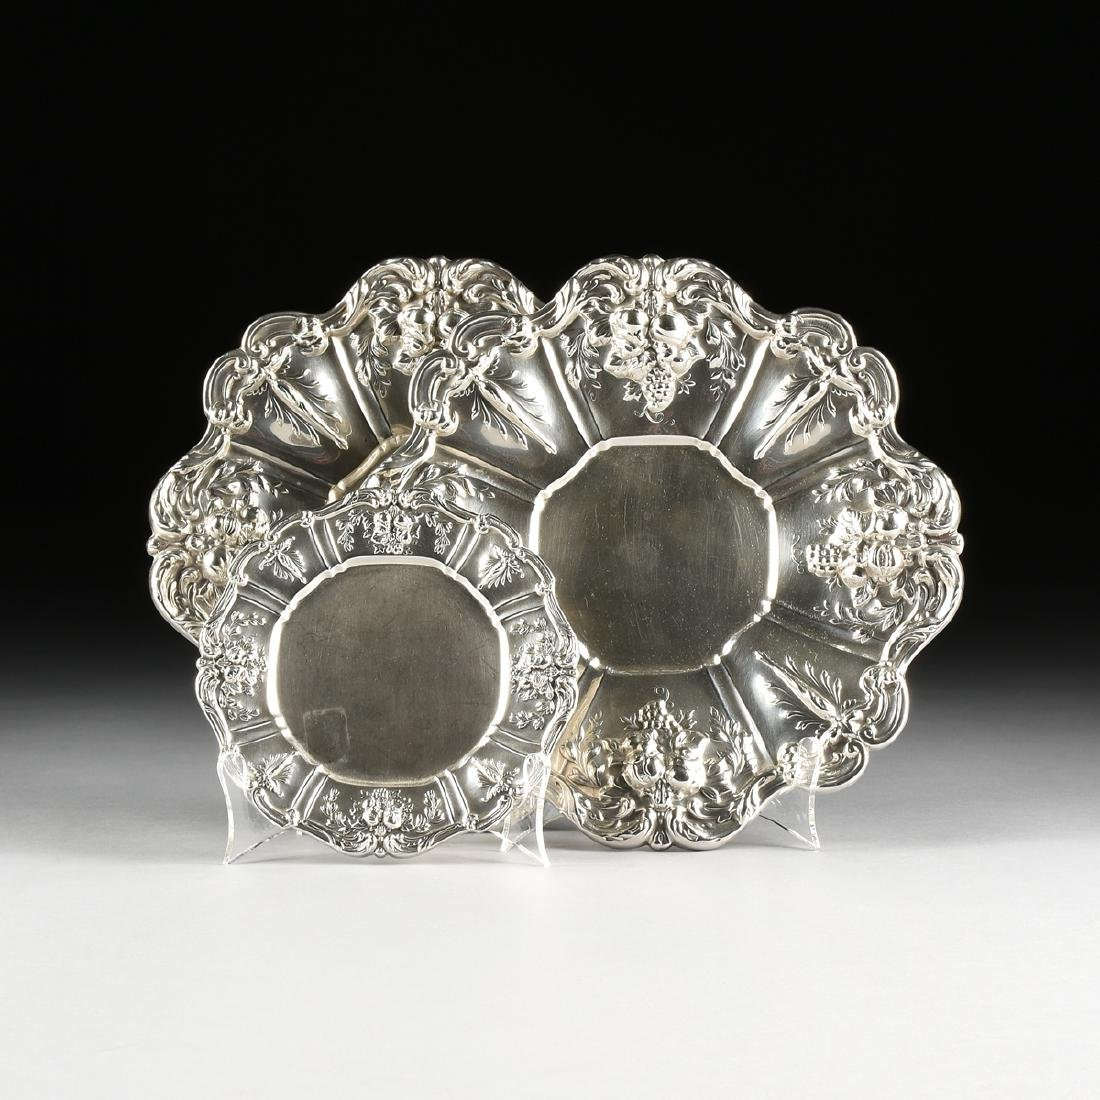 A SET OF THREE REED & BARTON STERLING SILVER SERVING